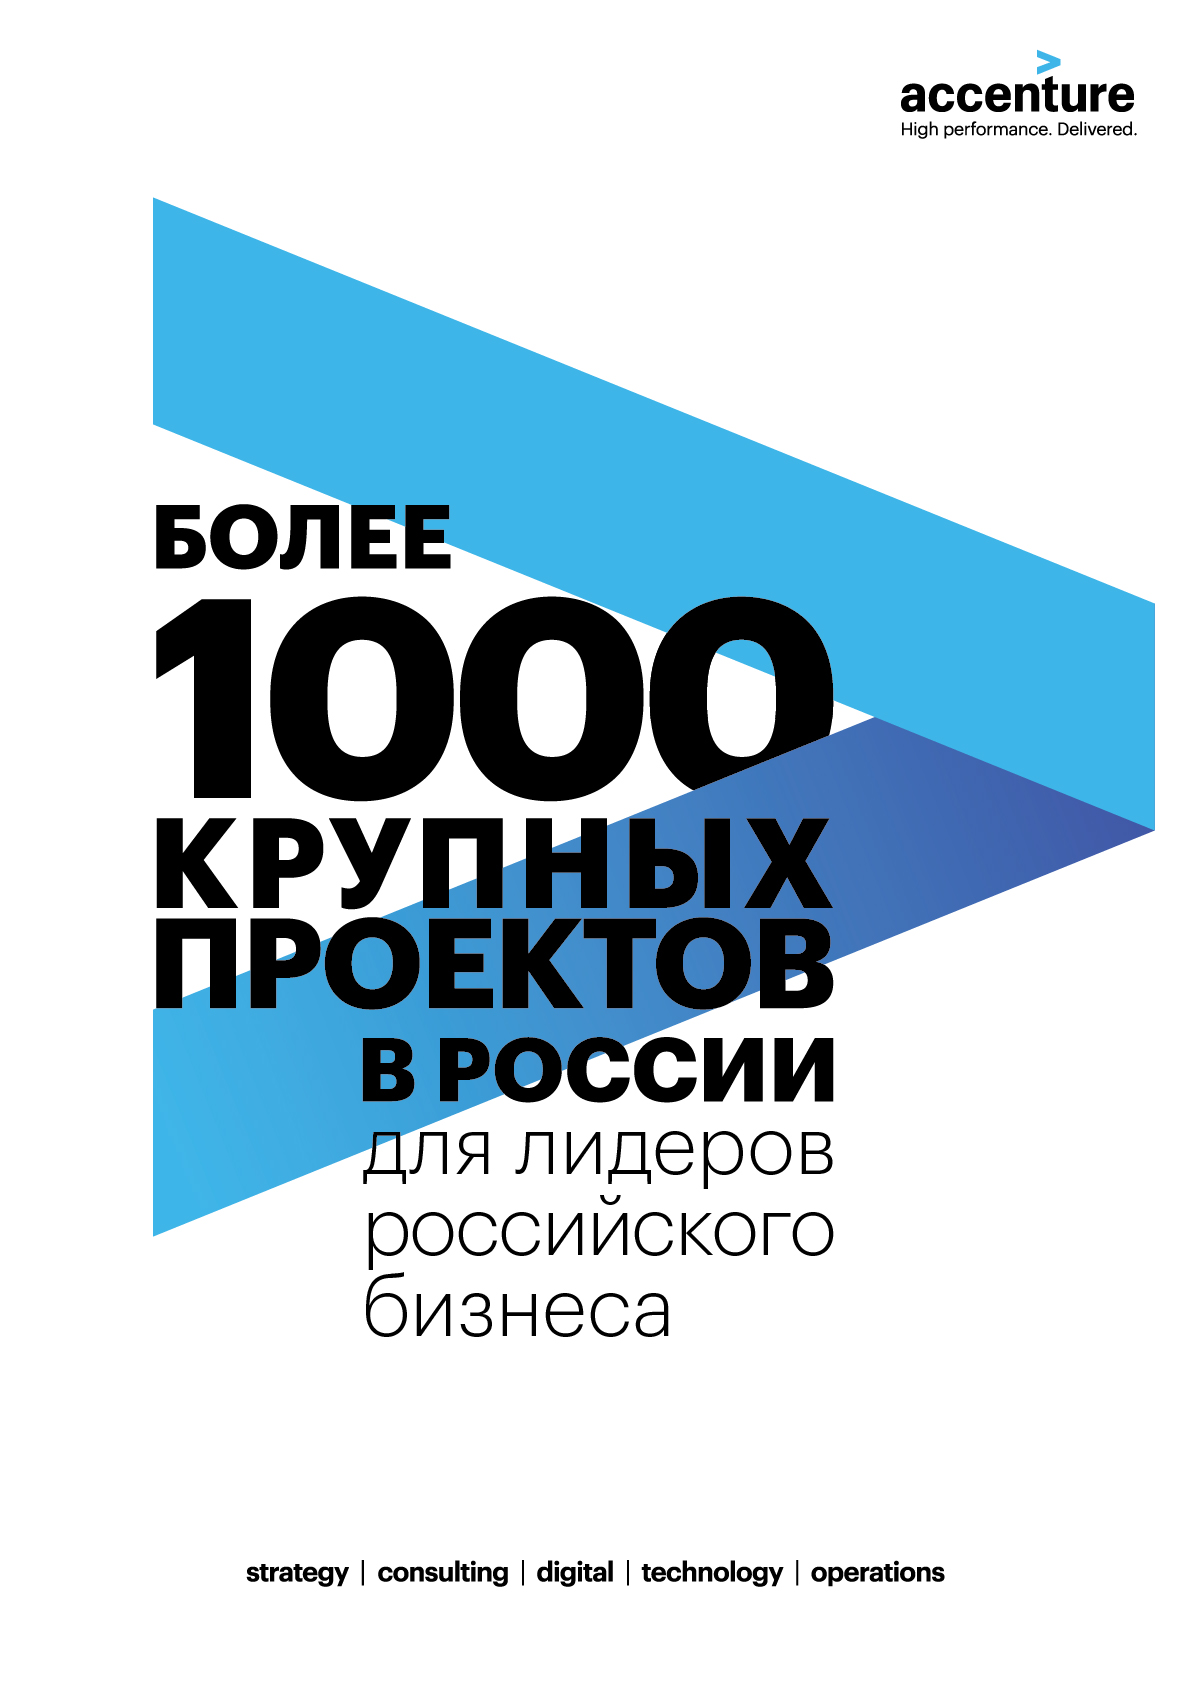 Click here to download the full article. БОЛЕЕ 1000 КРУПНЫХ ПРОЕКТОВ В РОССИИ ДЛЯЛИДЕРОВ РОССИЙСКОГО БИЗНЕСА. Открыть ссылку в новом окне.